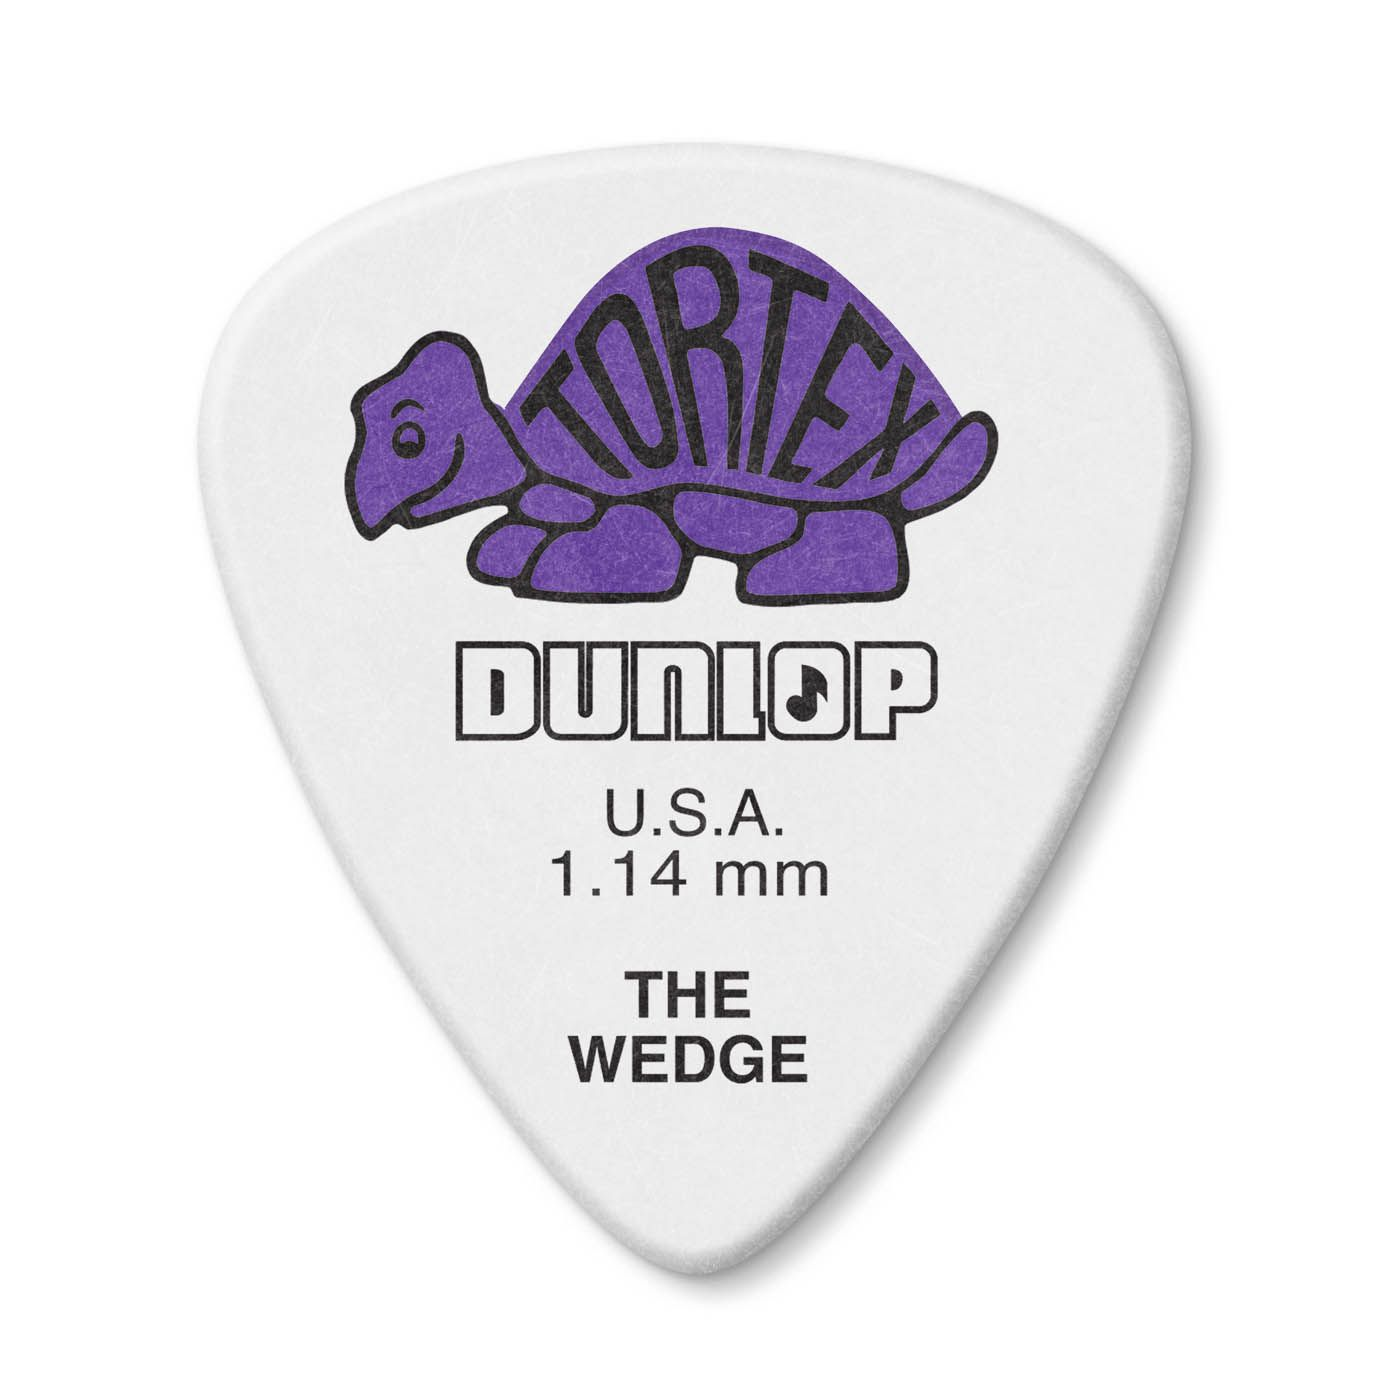 Palheta Dunlop Tortex The Wedge 1.14